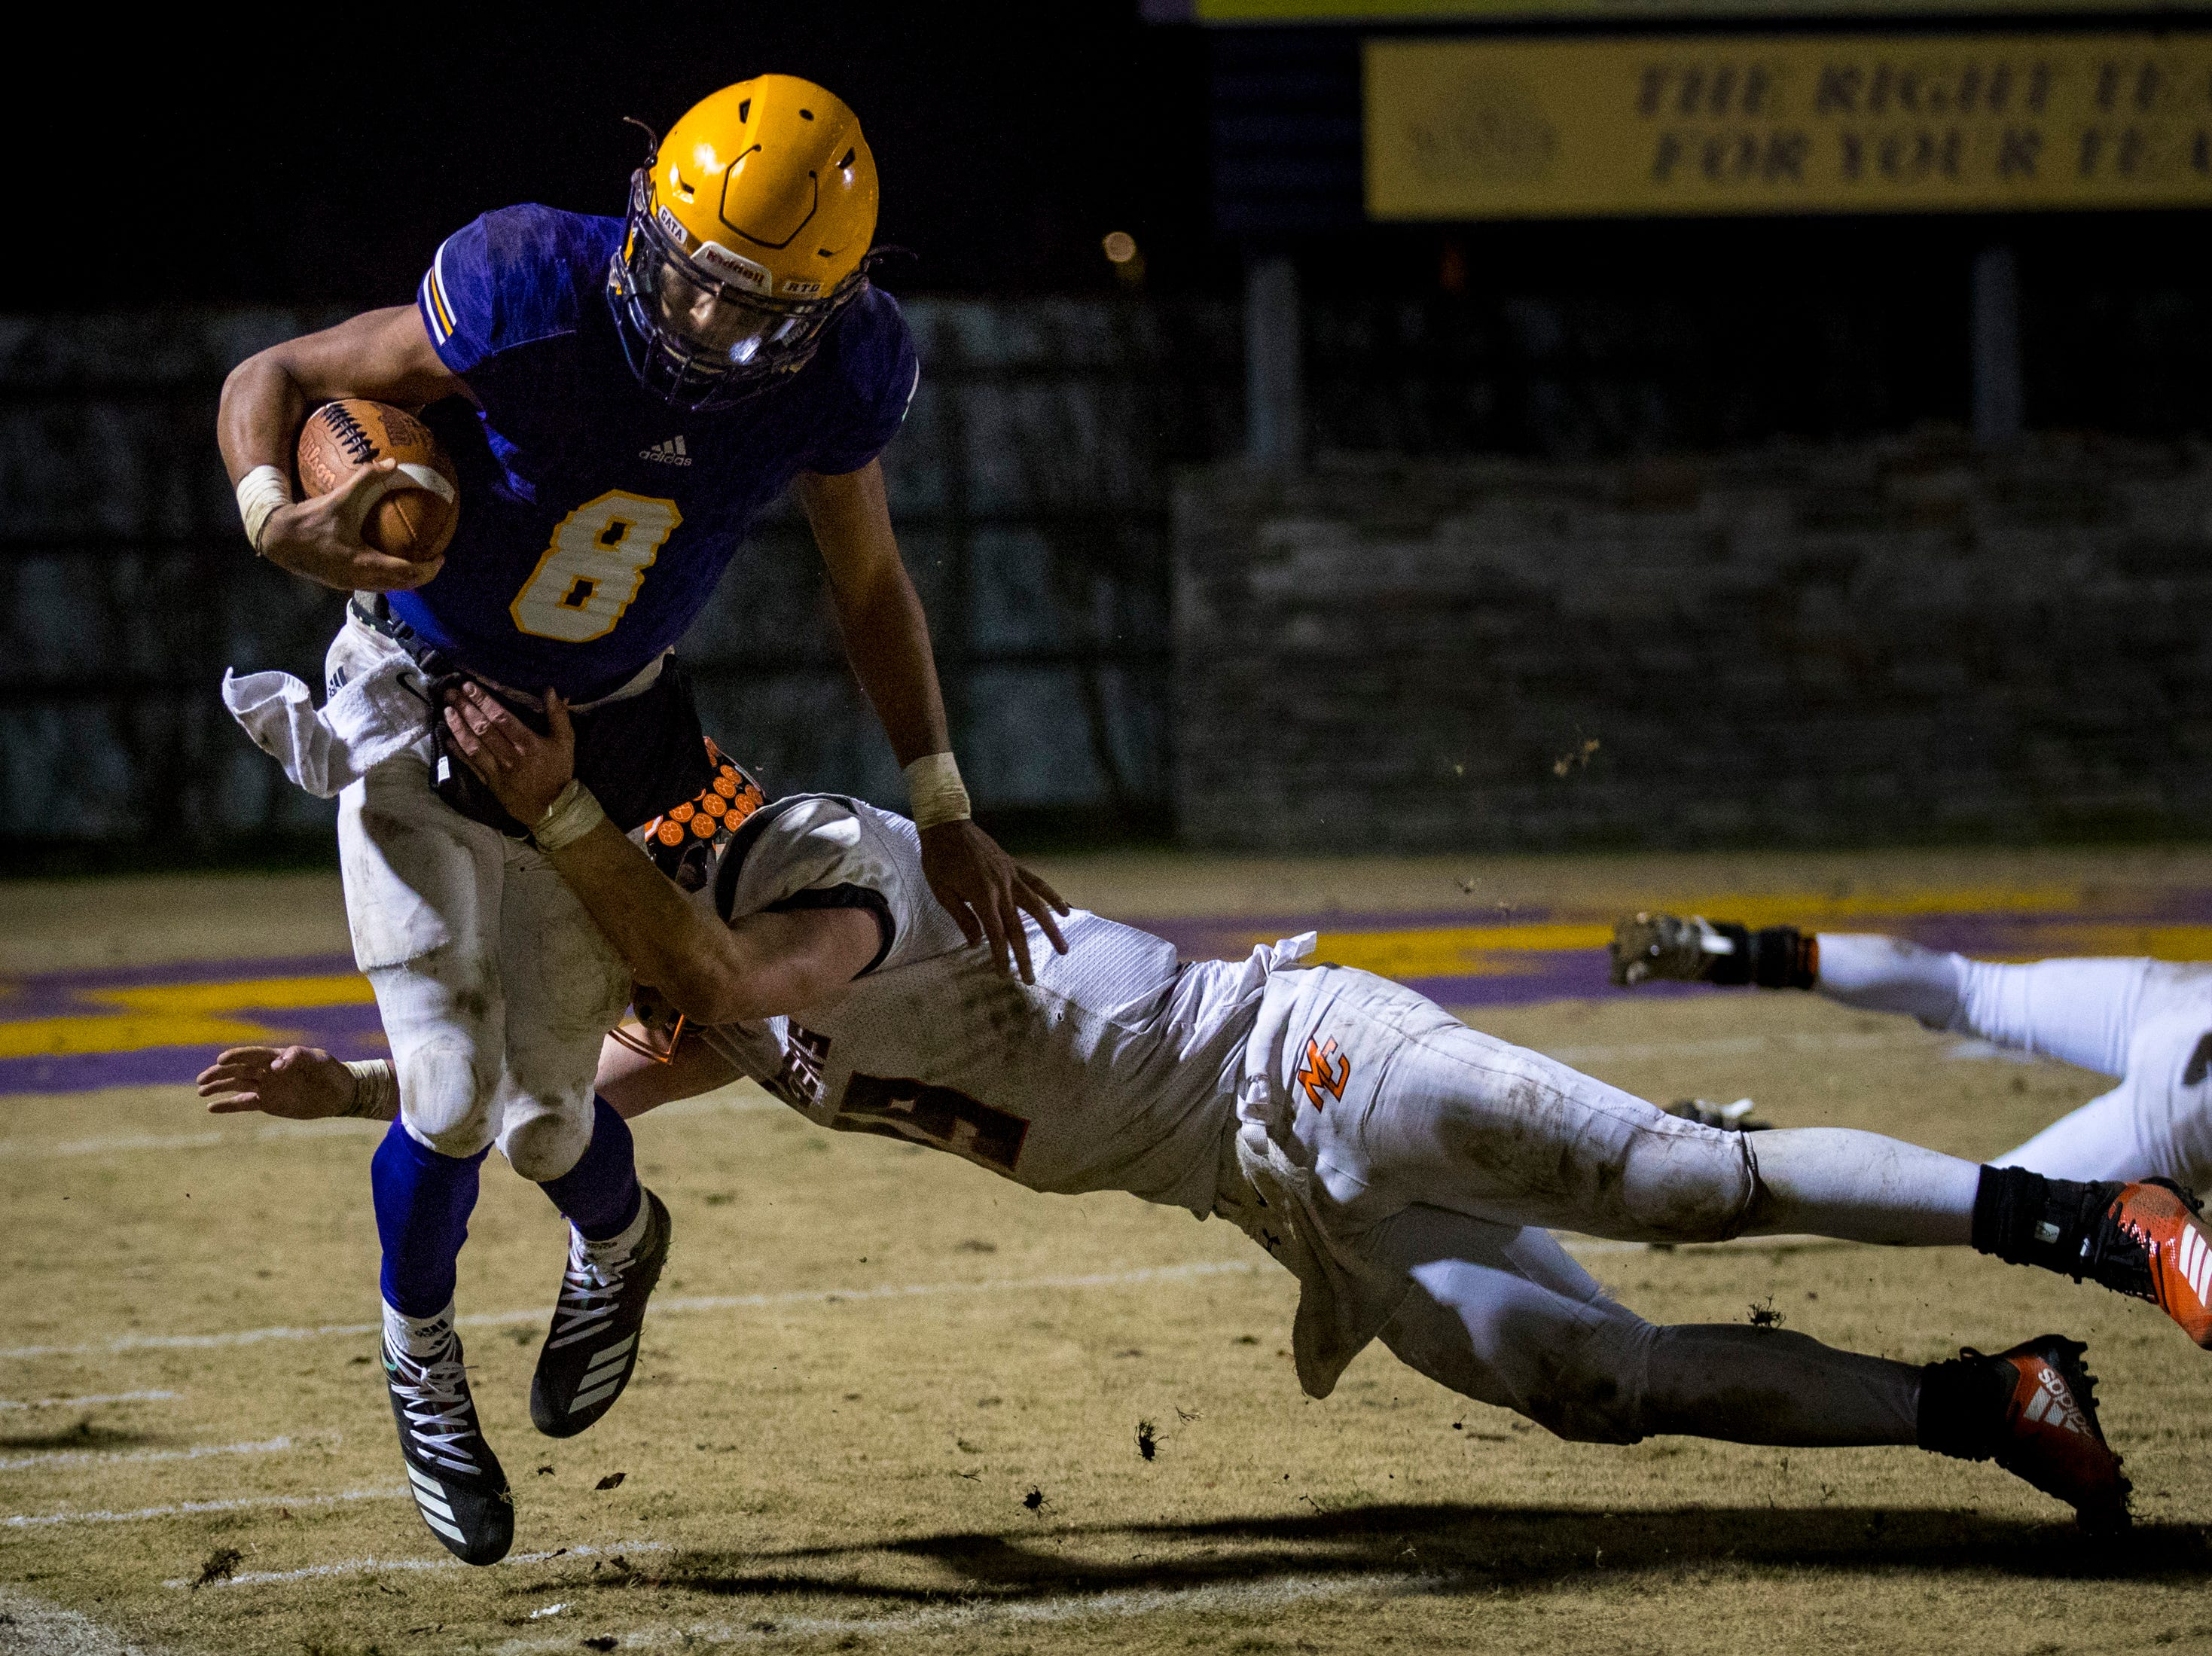 Trousdale County's Keyvont Baines (8) tries to dodge a tackle during Trousdale County's game against Meigs County at Jim Satterfield Stadium in Hartsville on Friday, Nov. 23, 2018.